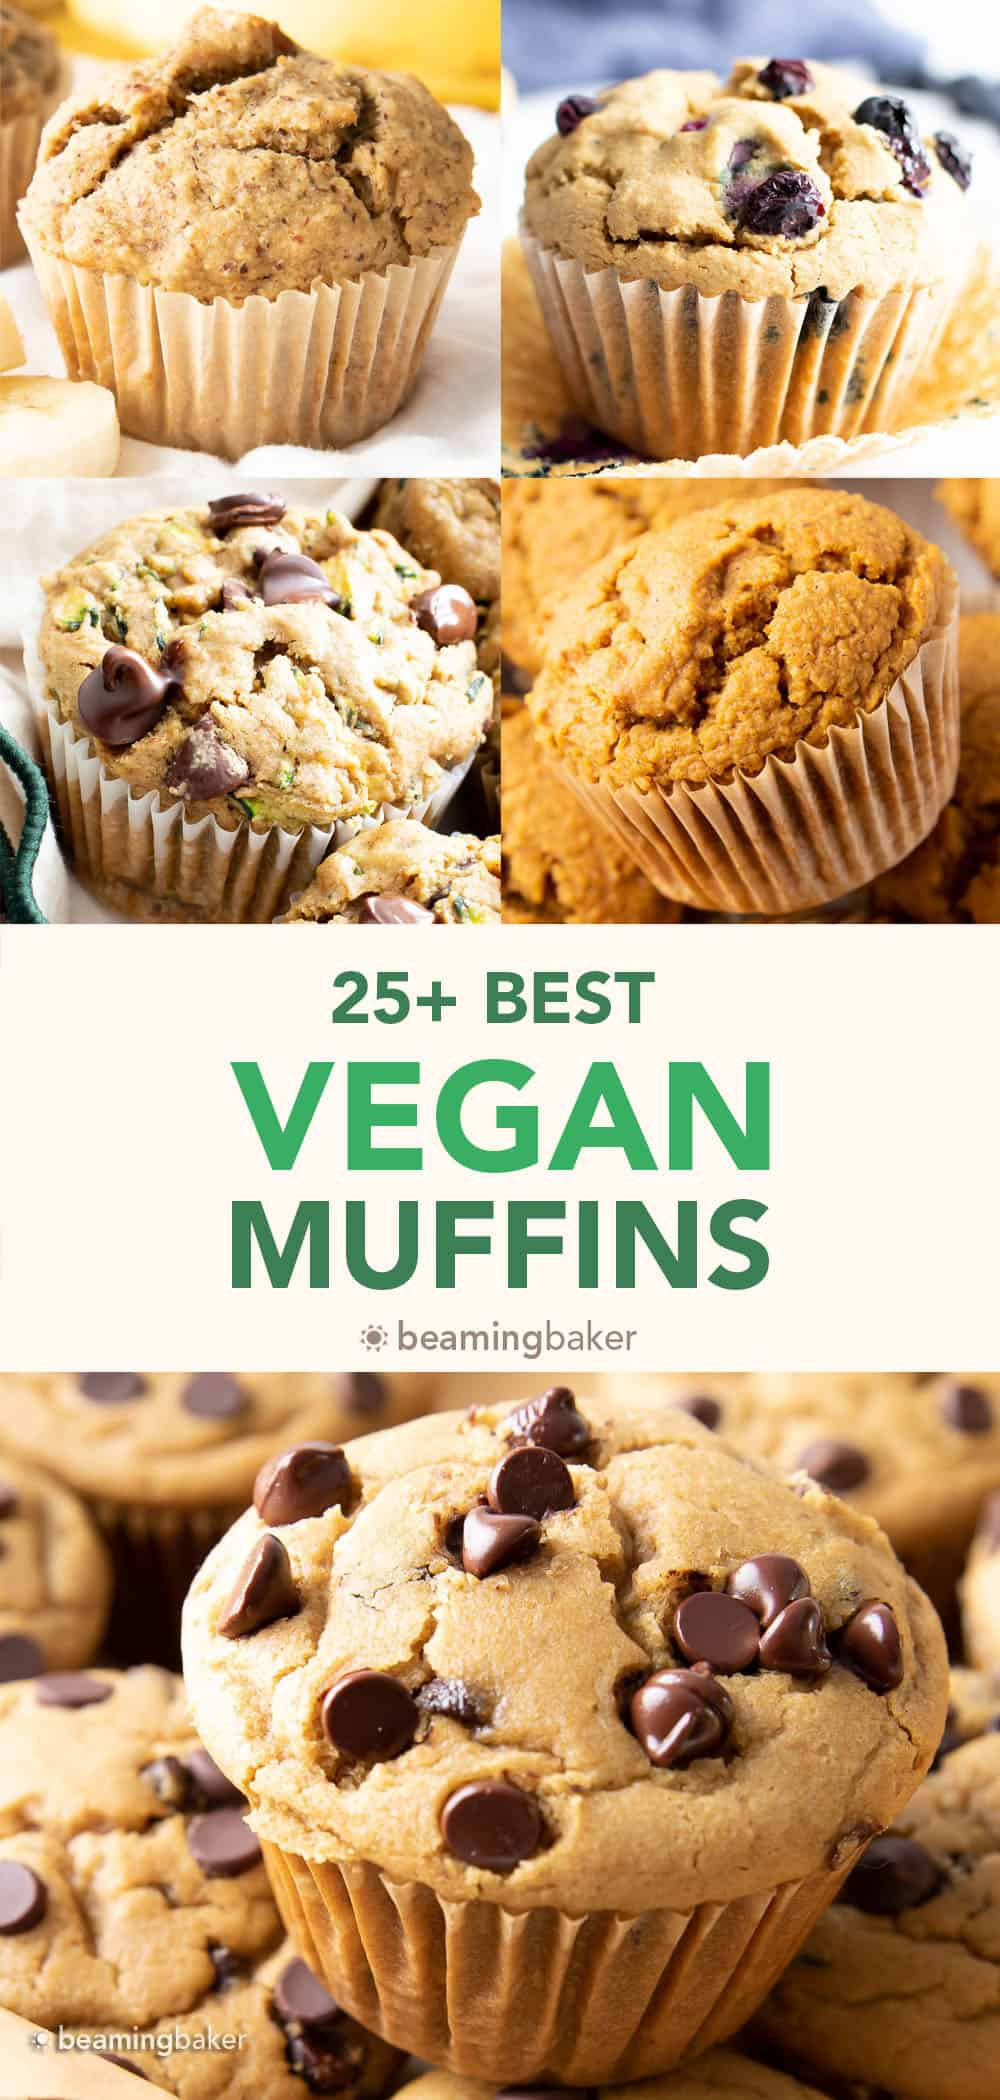 25+ Absolute Best Vegan Muffins: an irresistibly mouthwatering collection of the best vegan muffins! Including vegan banana muffins, vegan pumpkin muffins, vegan chocolate chip muffins, and more! #veganmuffins #veganbananamuffins #vegan #muffins   Recipes on BeamingBaker.com